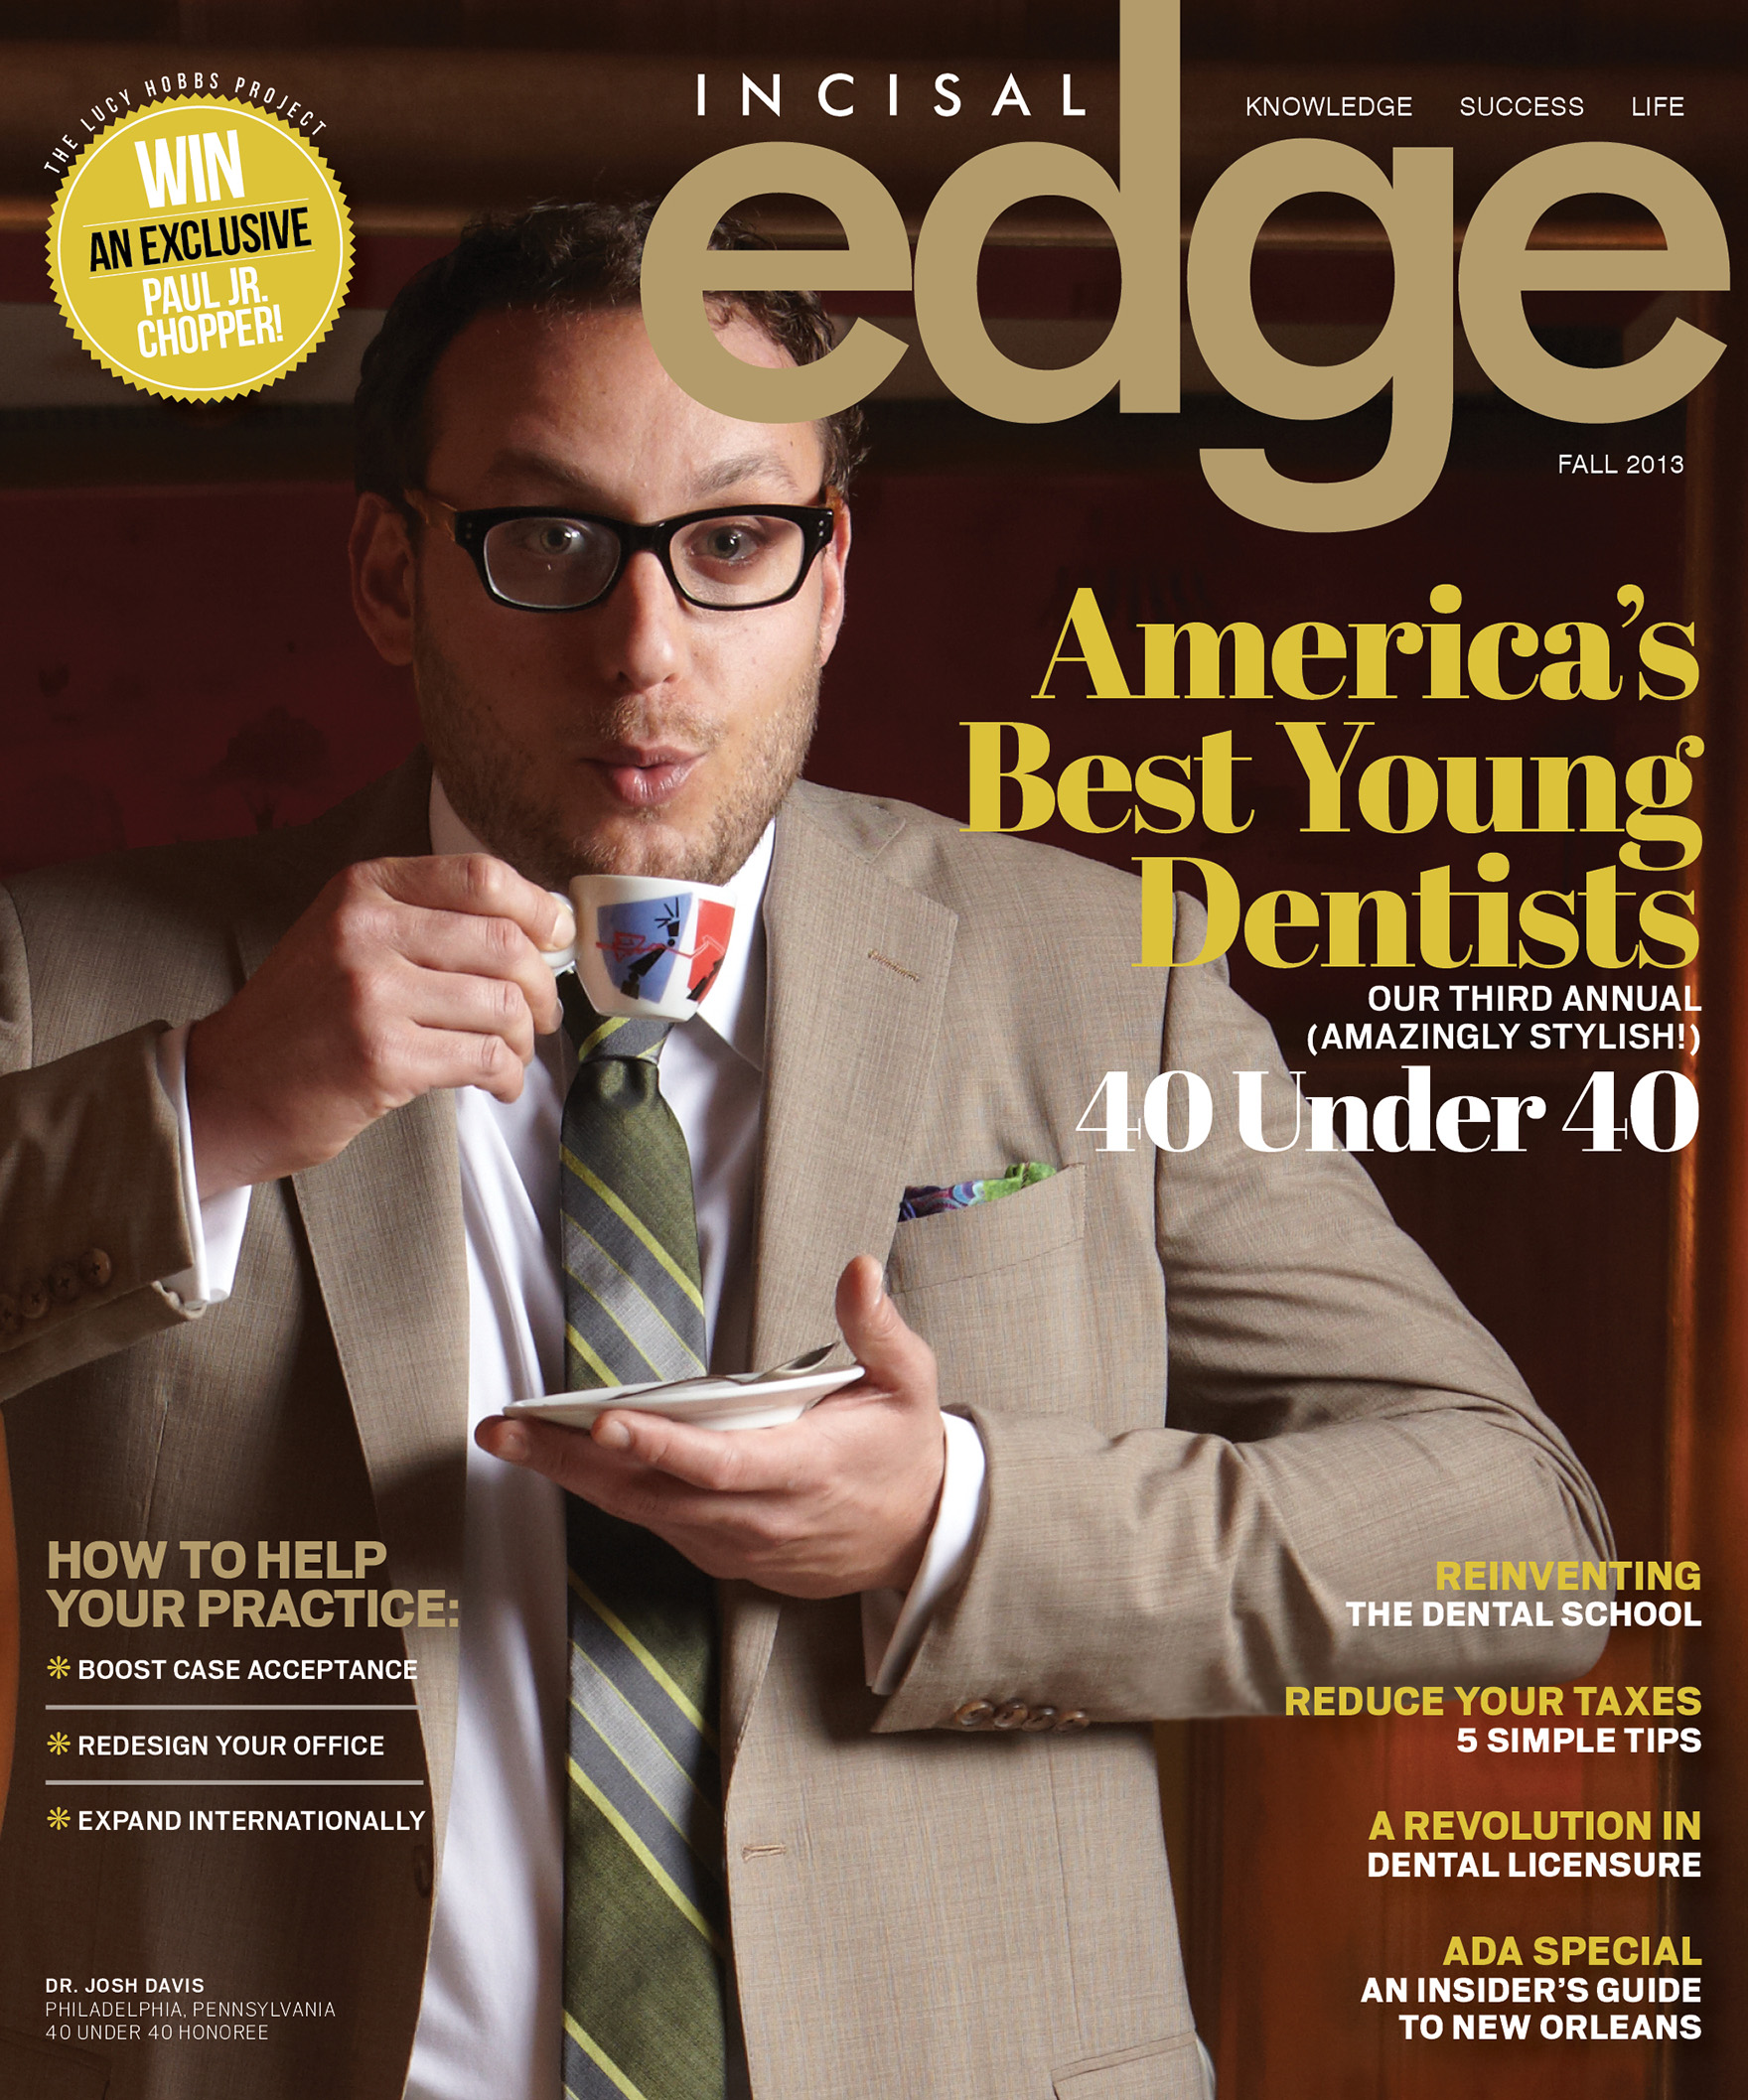 Published by Benco Dental, Incisal Edge, the leading lifestyle magazine for dental professionals nationwide celebrates dentists' achievements both inside the operatory and during their hard-earned downtime.  On the cover of 2013's 40 Under 40 edition is Dr. Josh Davis. (Photography Jeff Fried/Style Director Joseph DeAcetis)